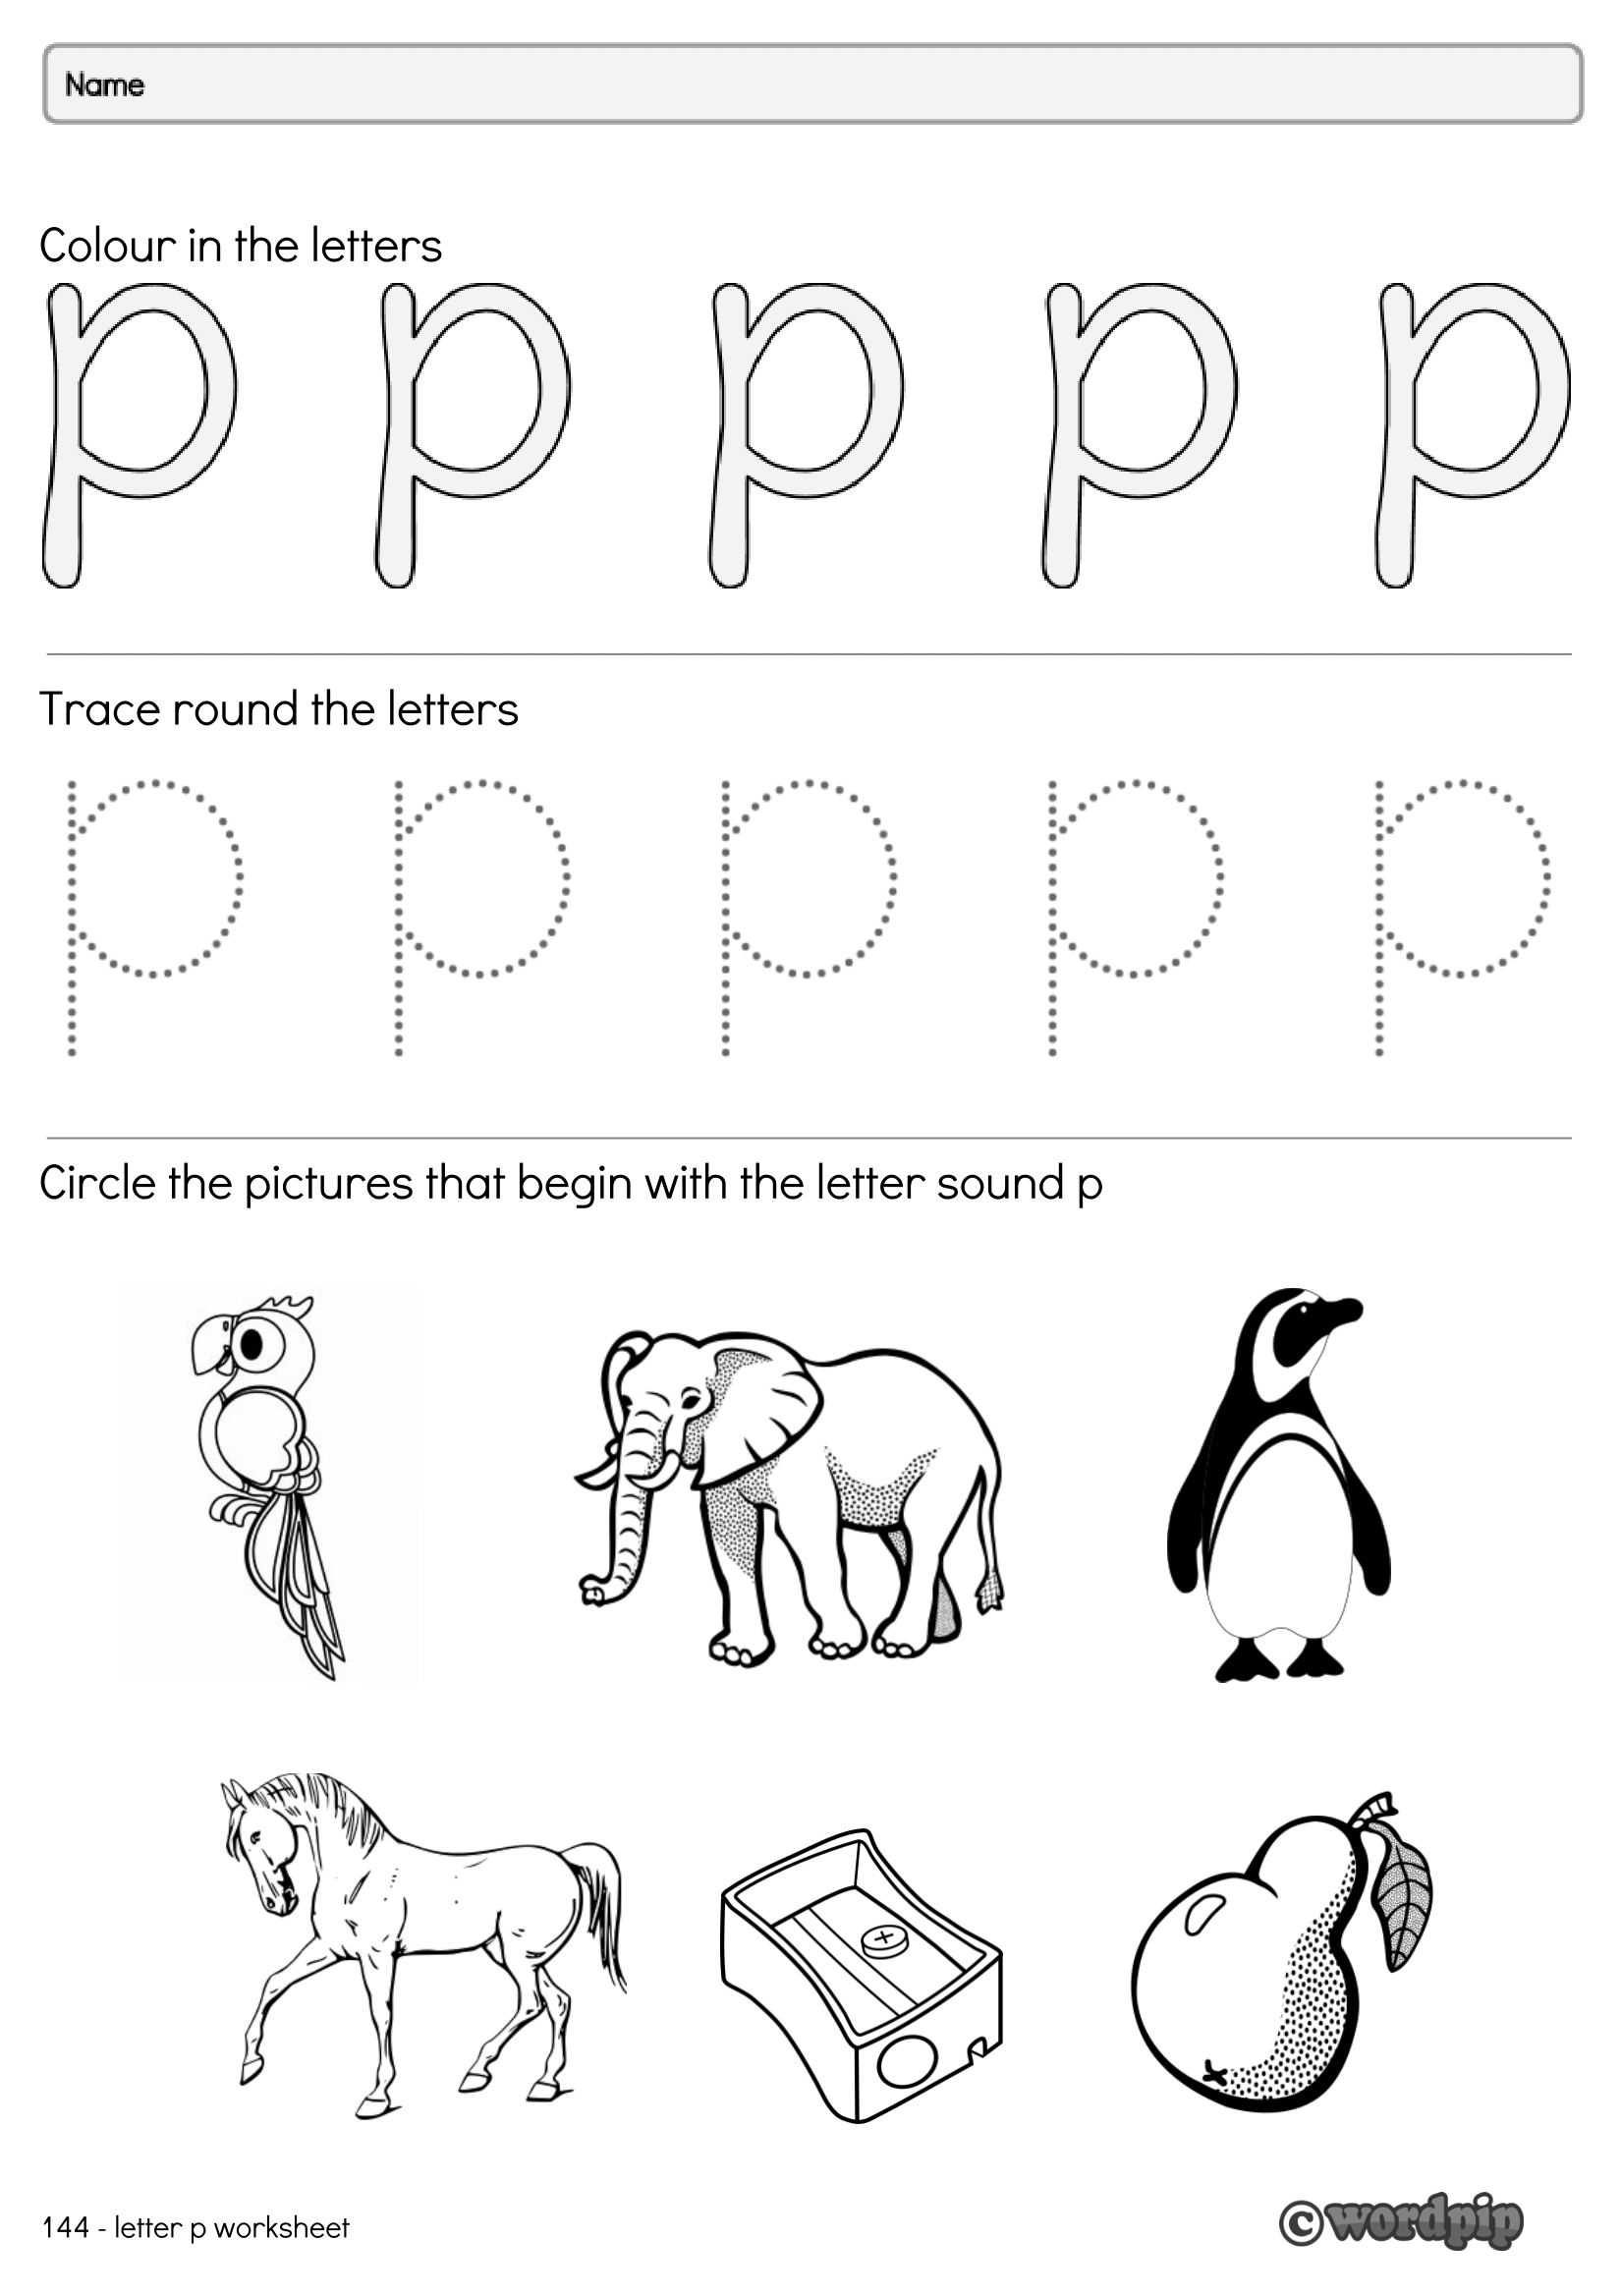 The Letterp Worksheet Designed To Help Get Learners